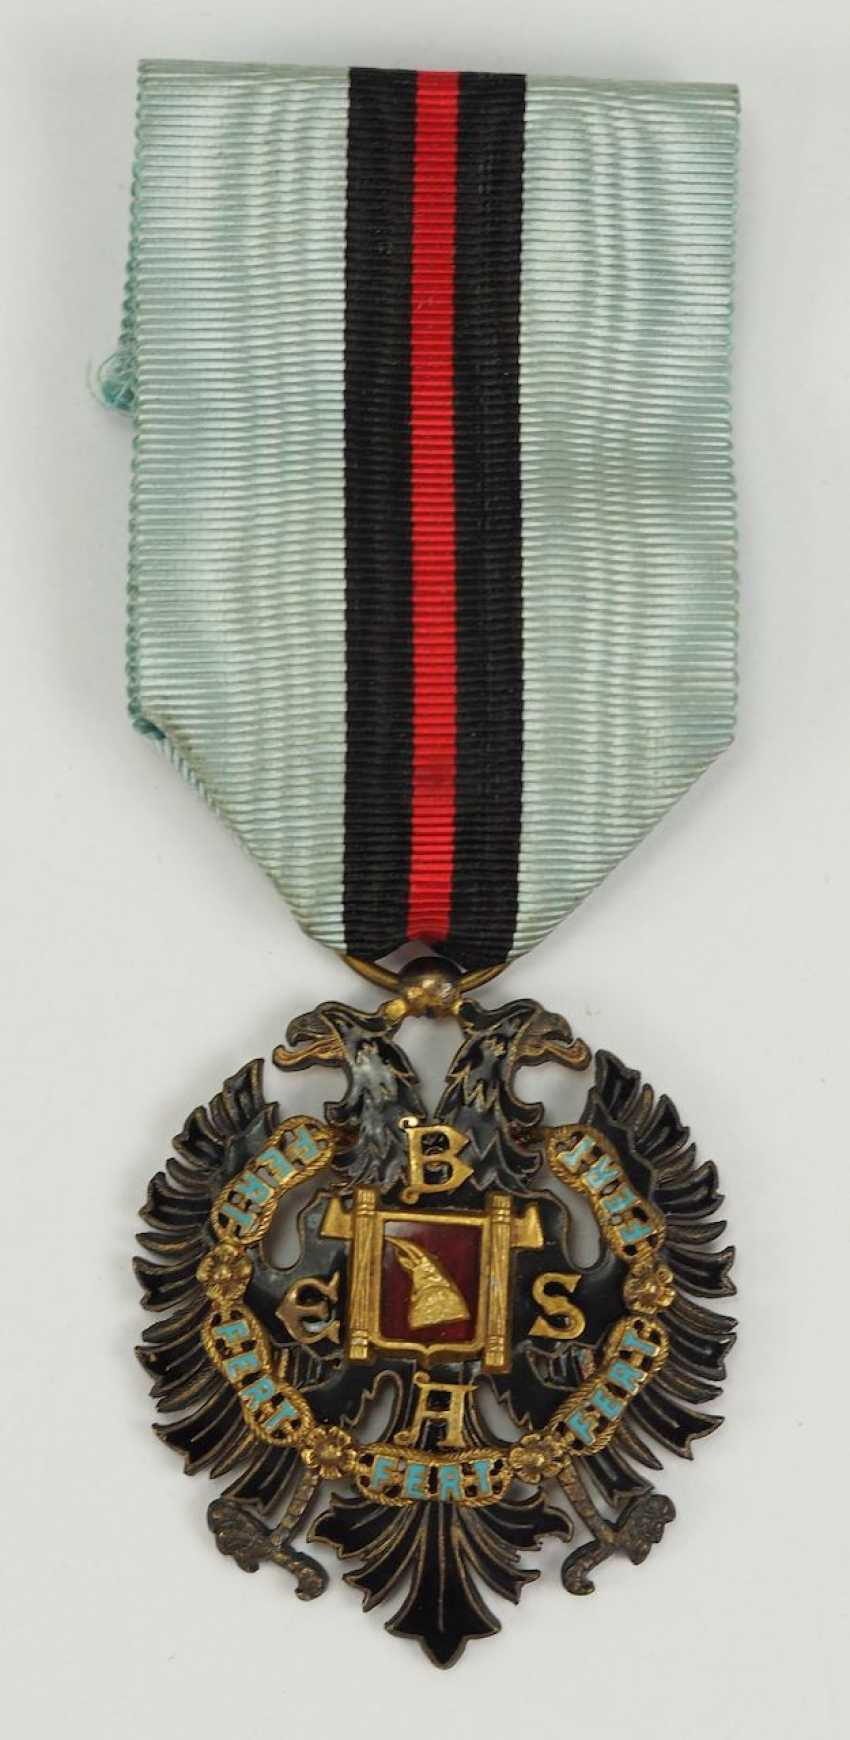 Albania: order of the Loyal / Besa-order, 2. Model (1940-1943), Knight's Decoration. - photo 1